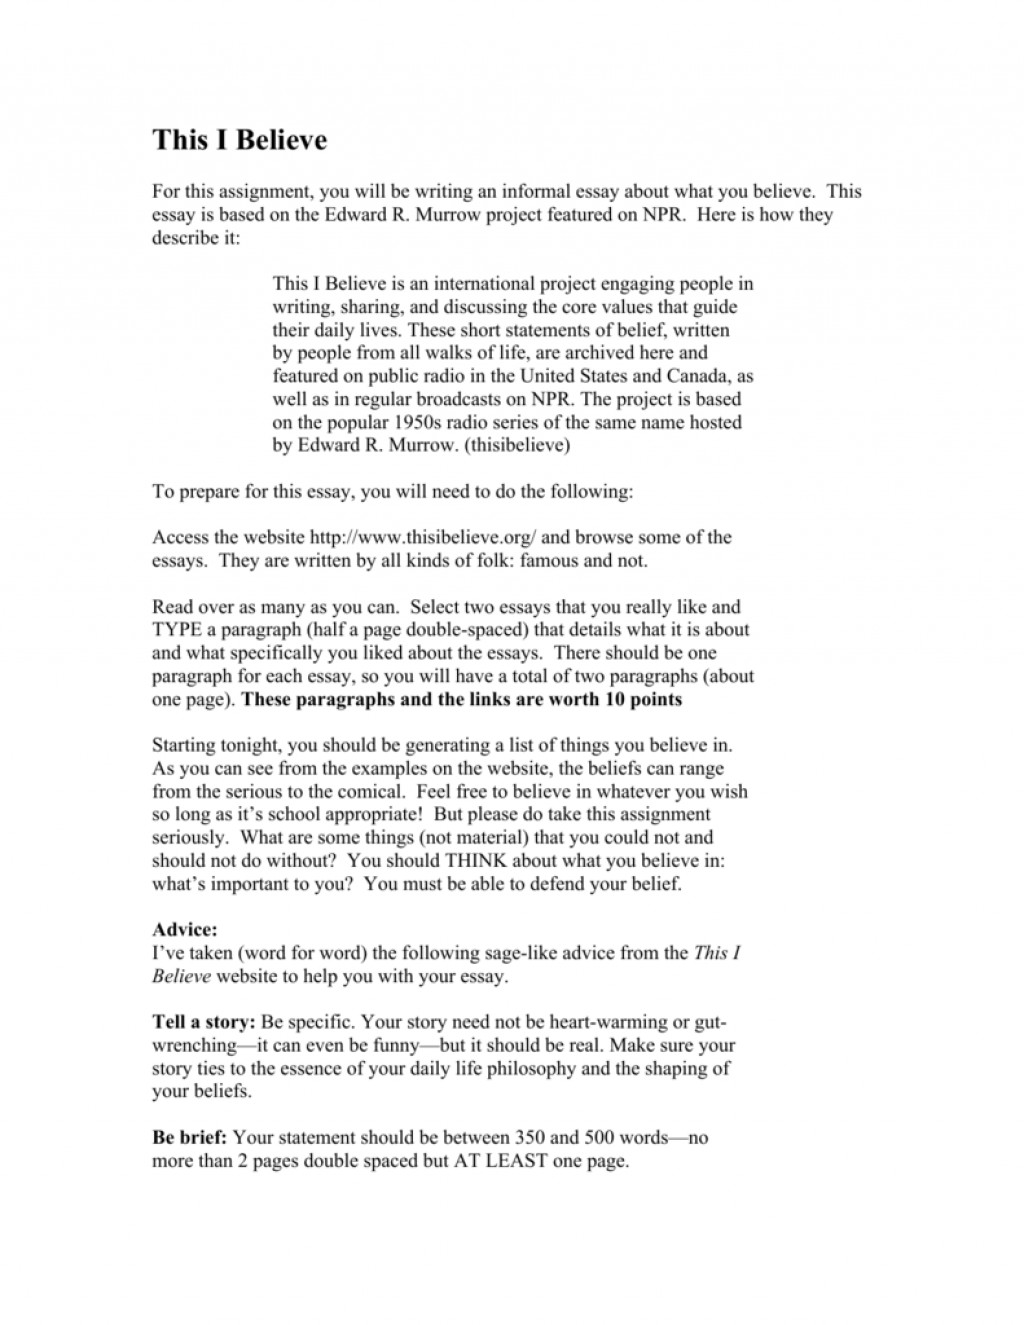 009 Essay Example 008807220 1 I Belive Surprising Essays Believe About Sports Ideas Large